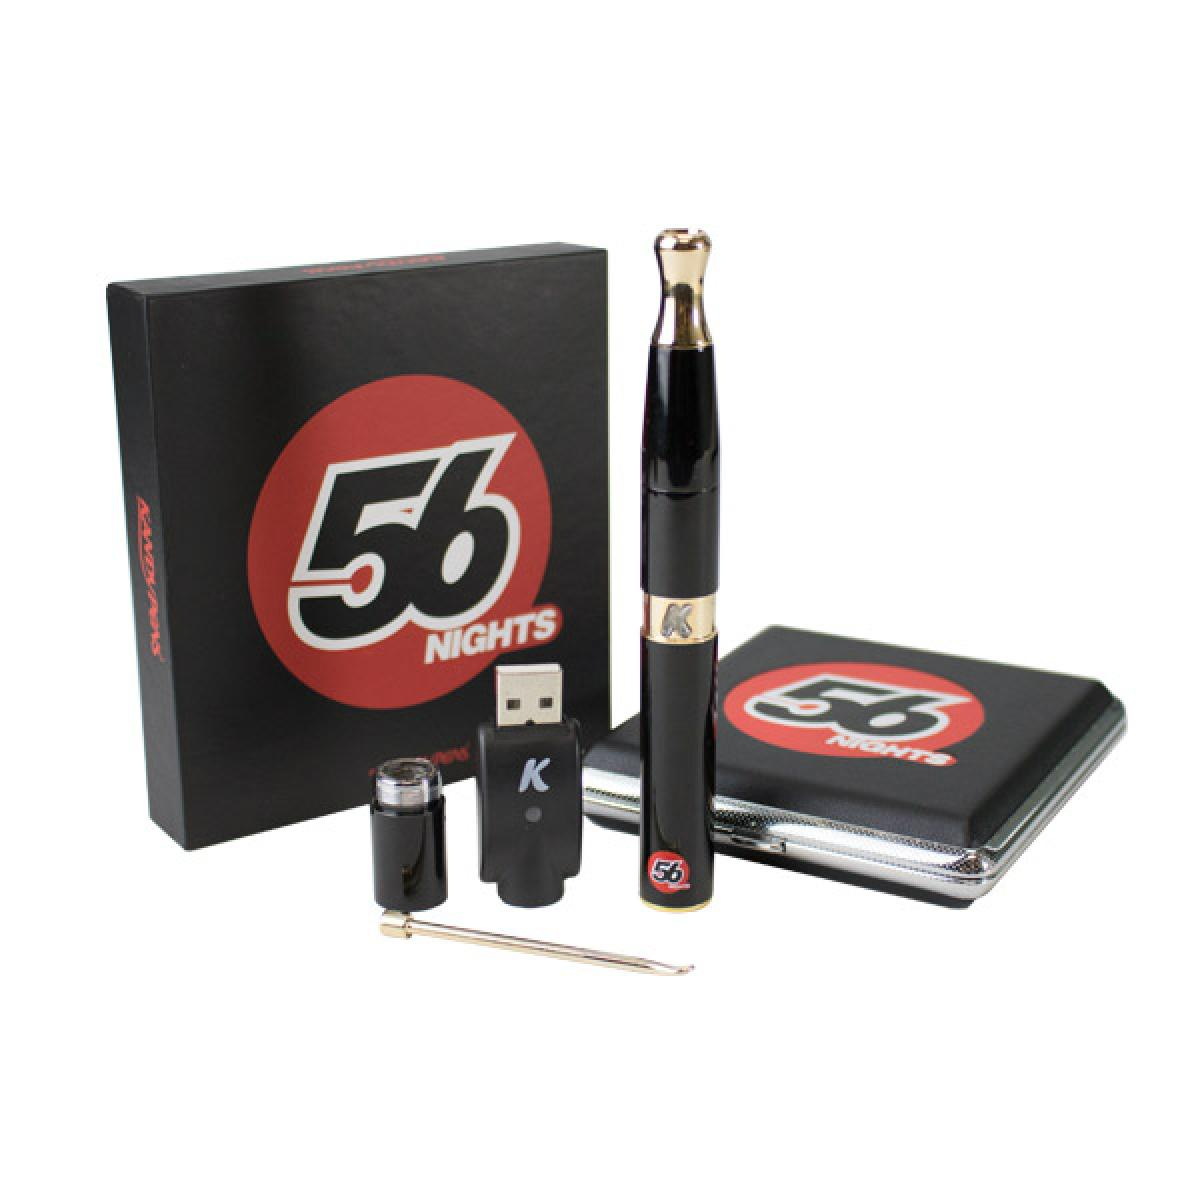 Galaxy Vaporizer - 56 Nights Edition